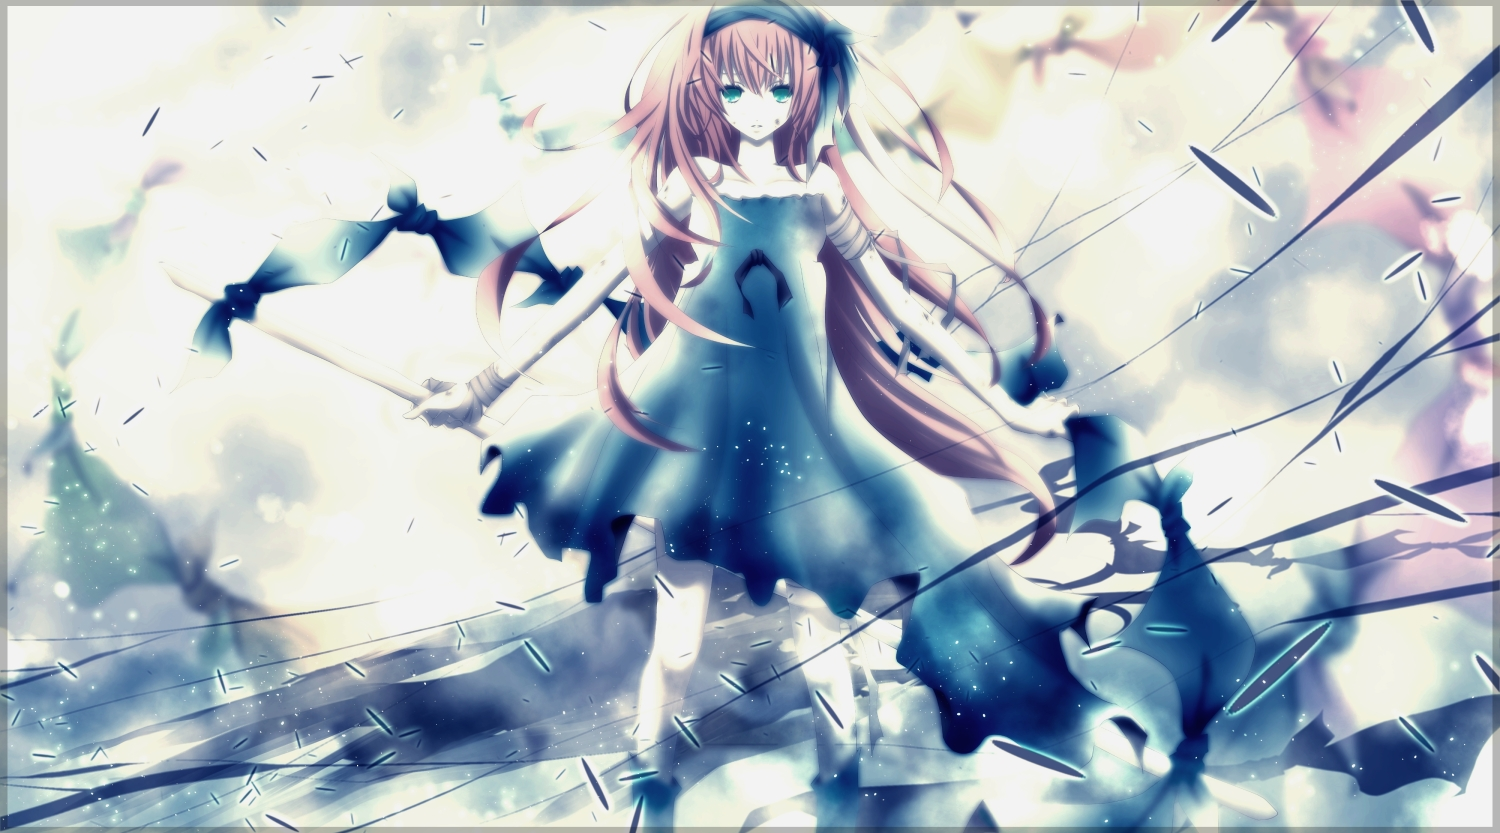 aonoe clouds dress megurine_luka vocaloid